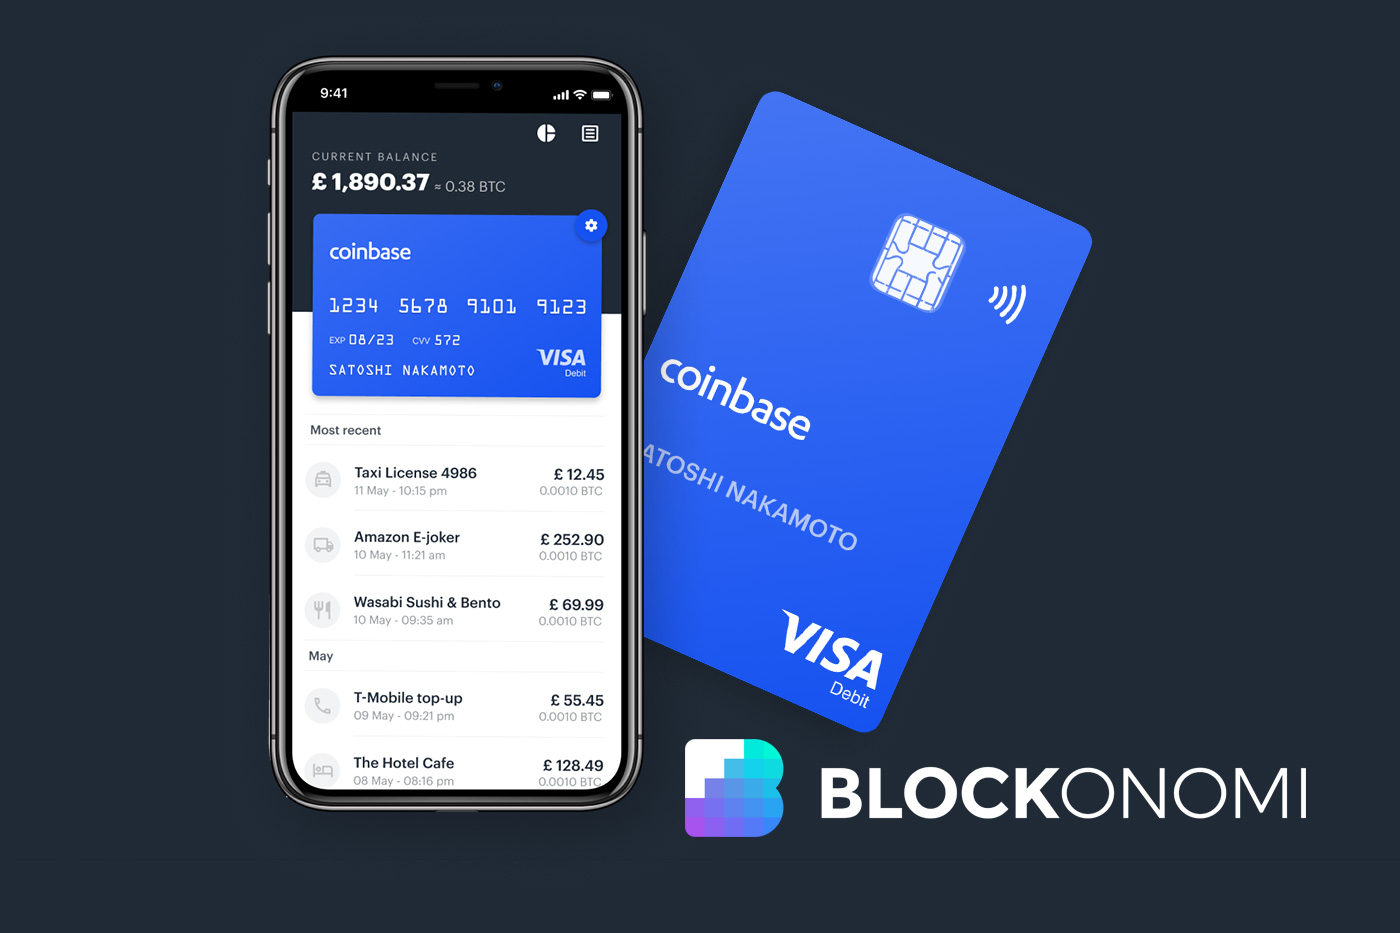 coinbase uk contact number